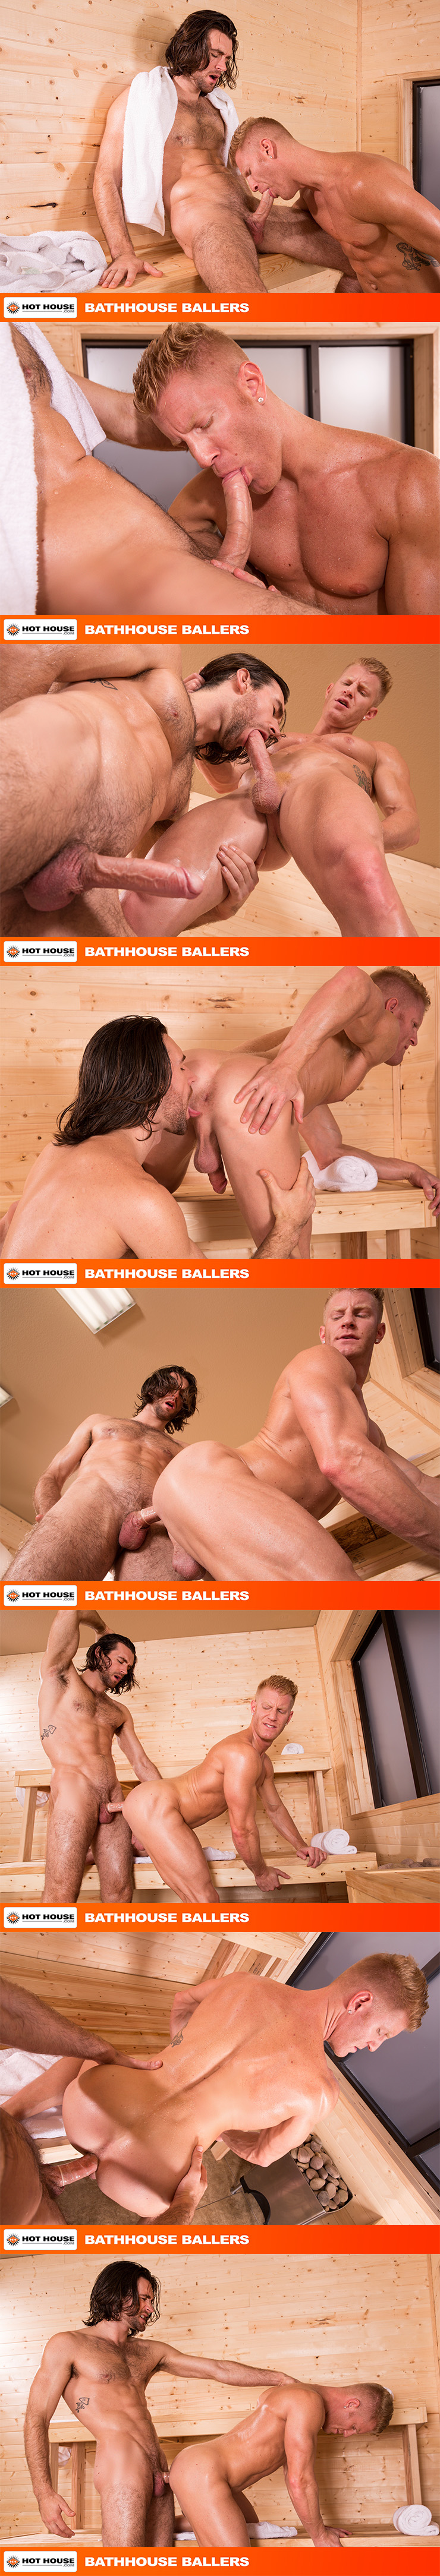 HotHouse Johnny V Woody Fox Gay Condom Sex Rimming Gay Sauna Big Cock Male Feet Hairy Dude Hairy Chest 2